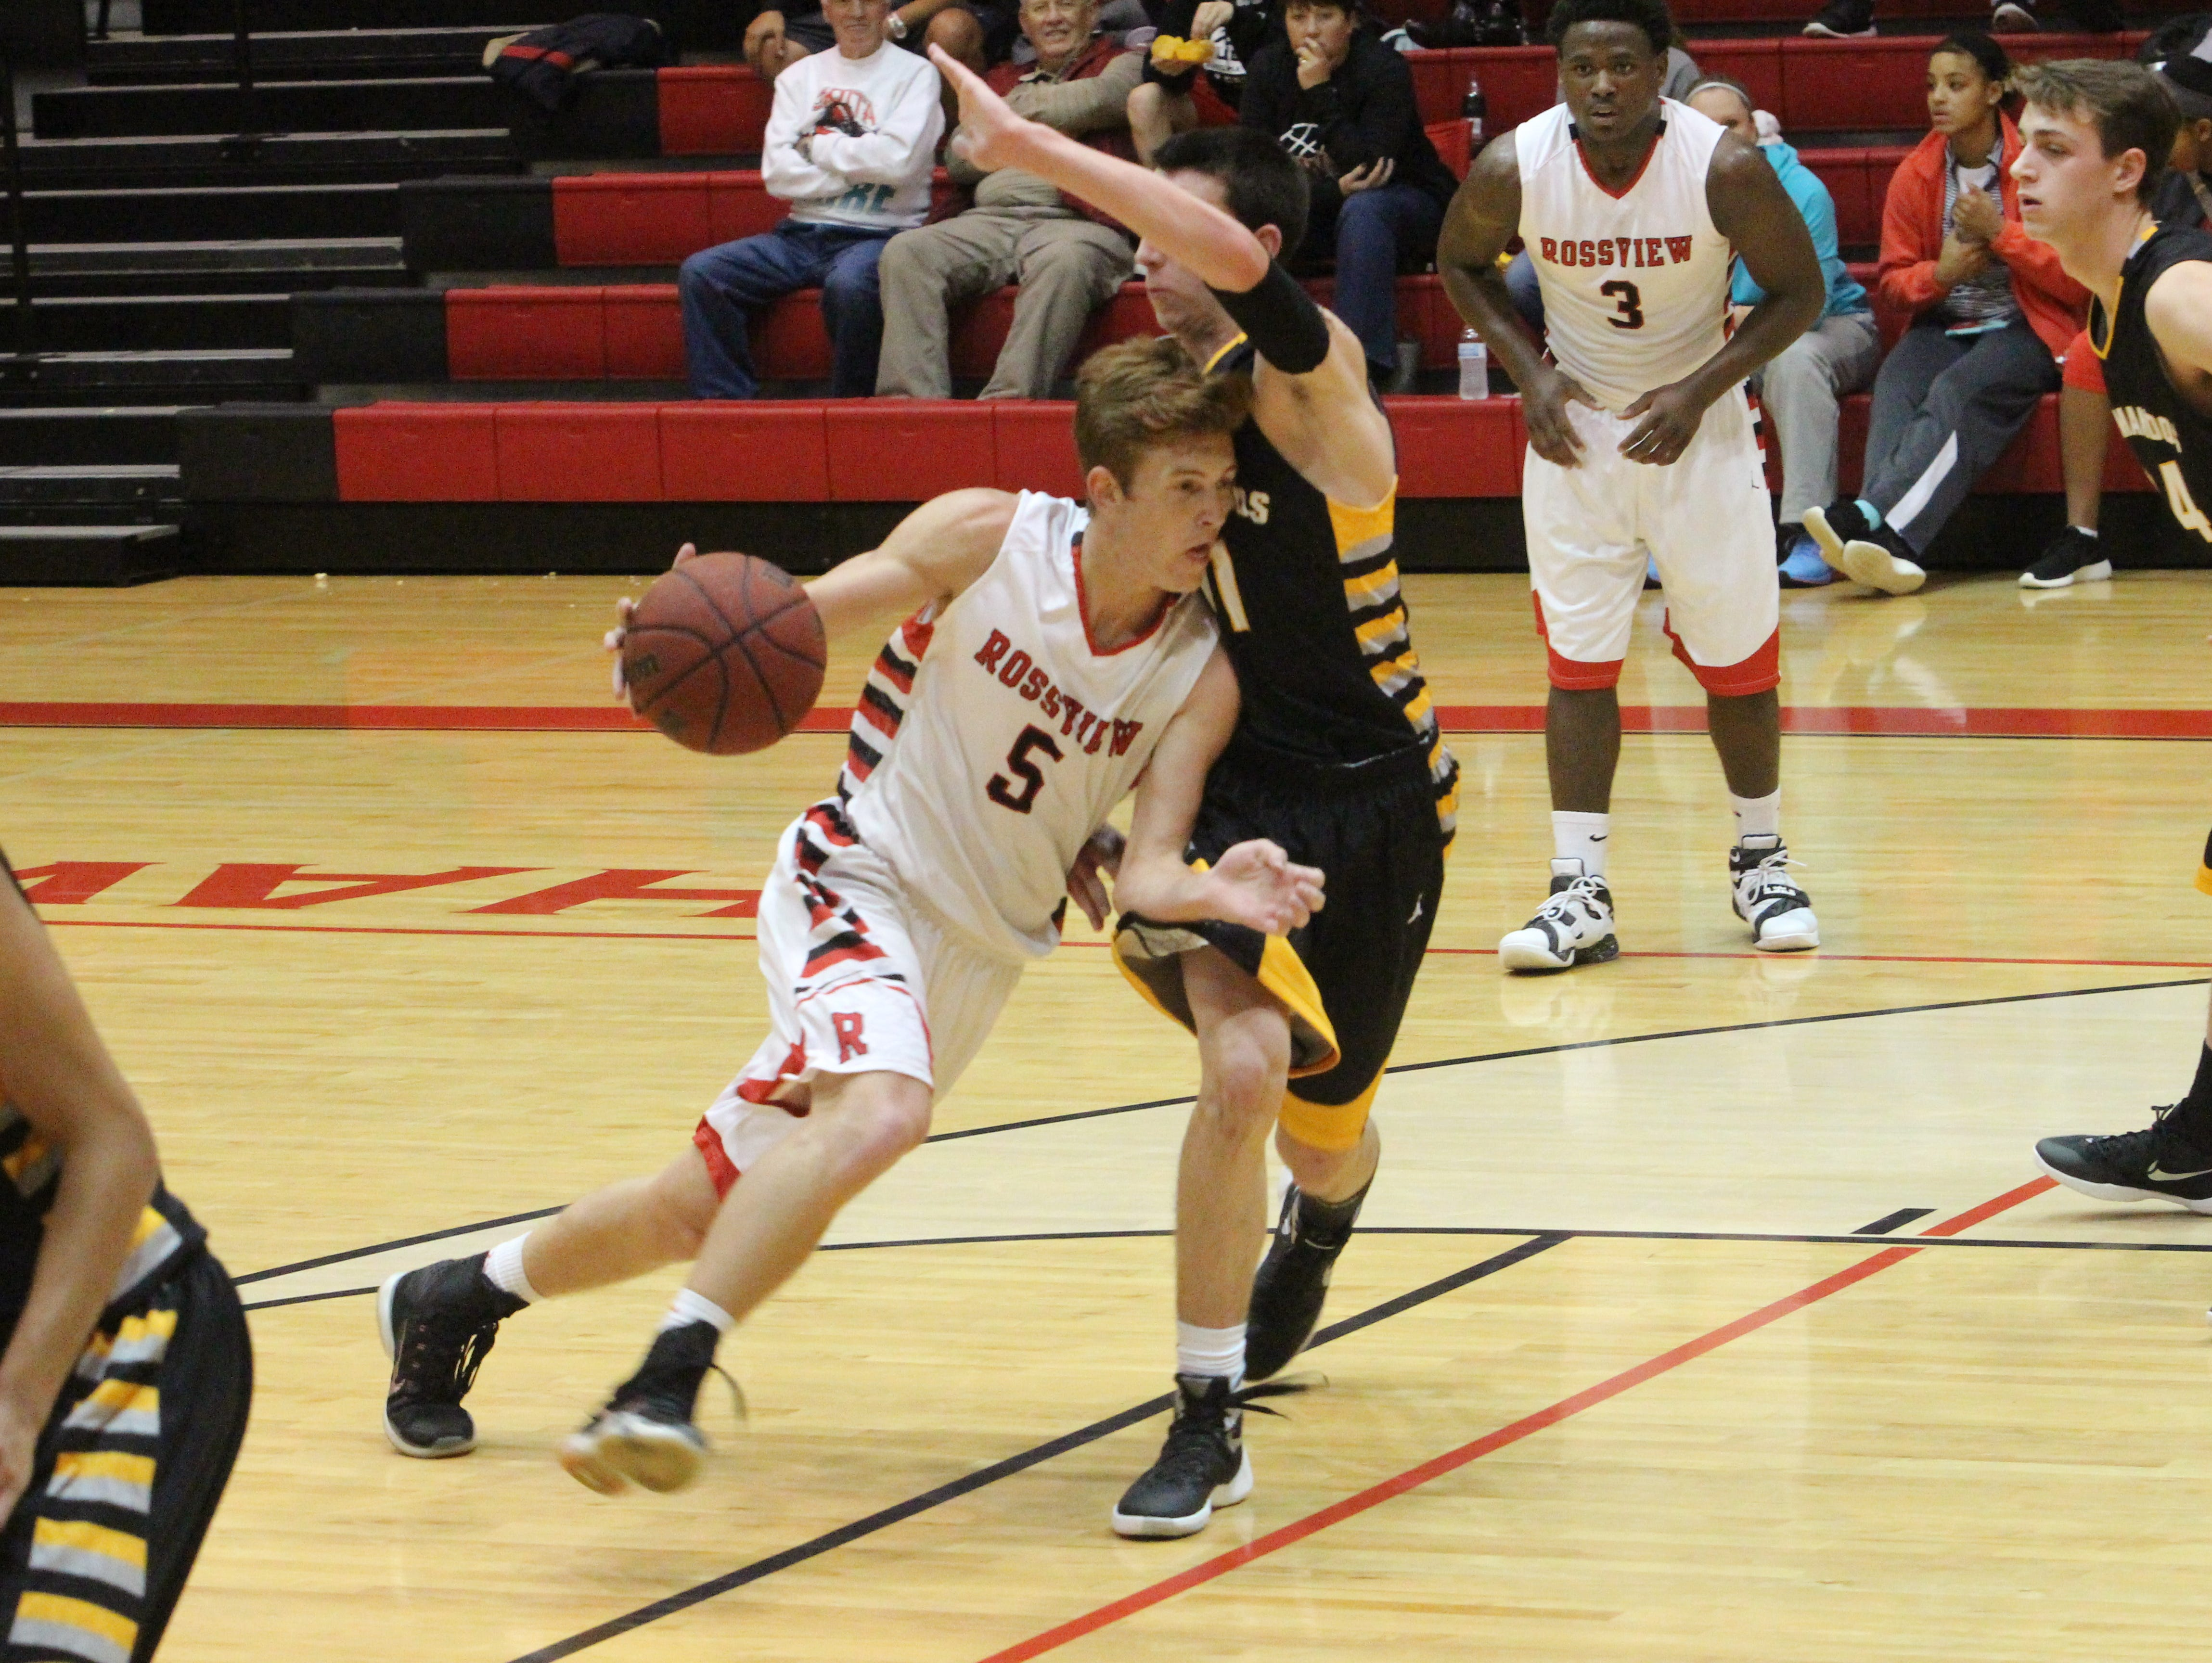 Rossview's Cannon Campbell (5) drives past a Hendersonville defender during the first half of their boys' basketball game Monday at Rossview High School.